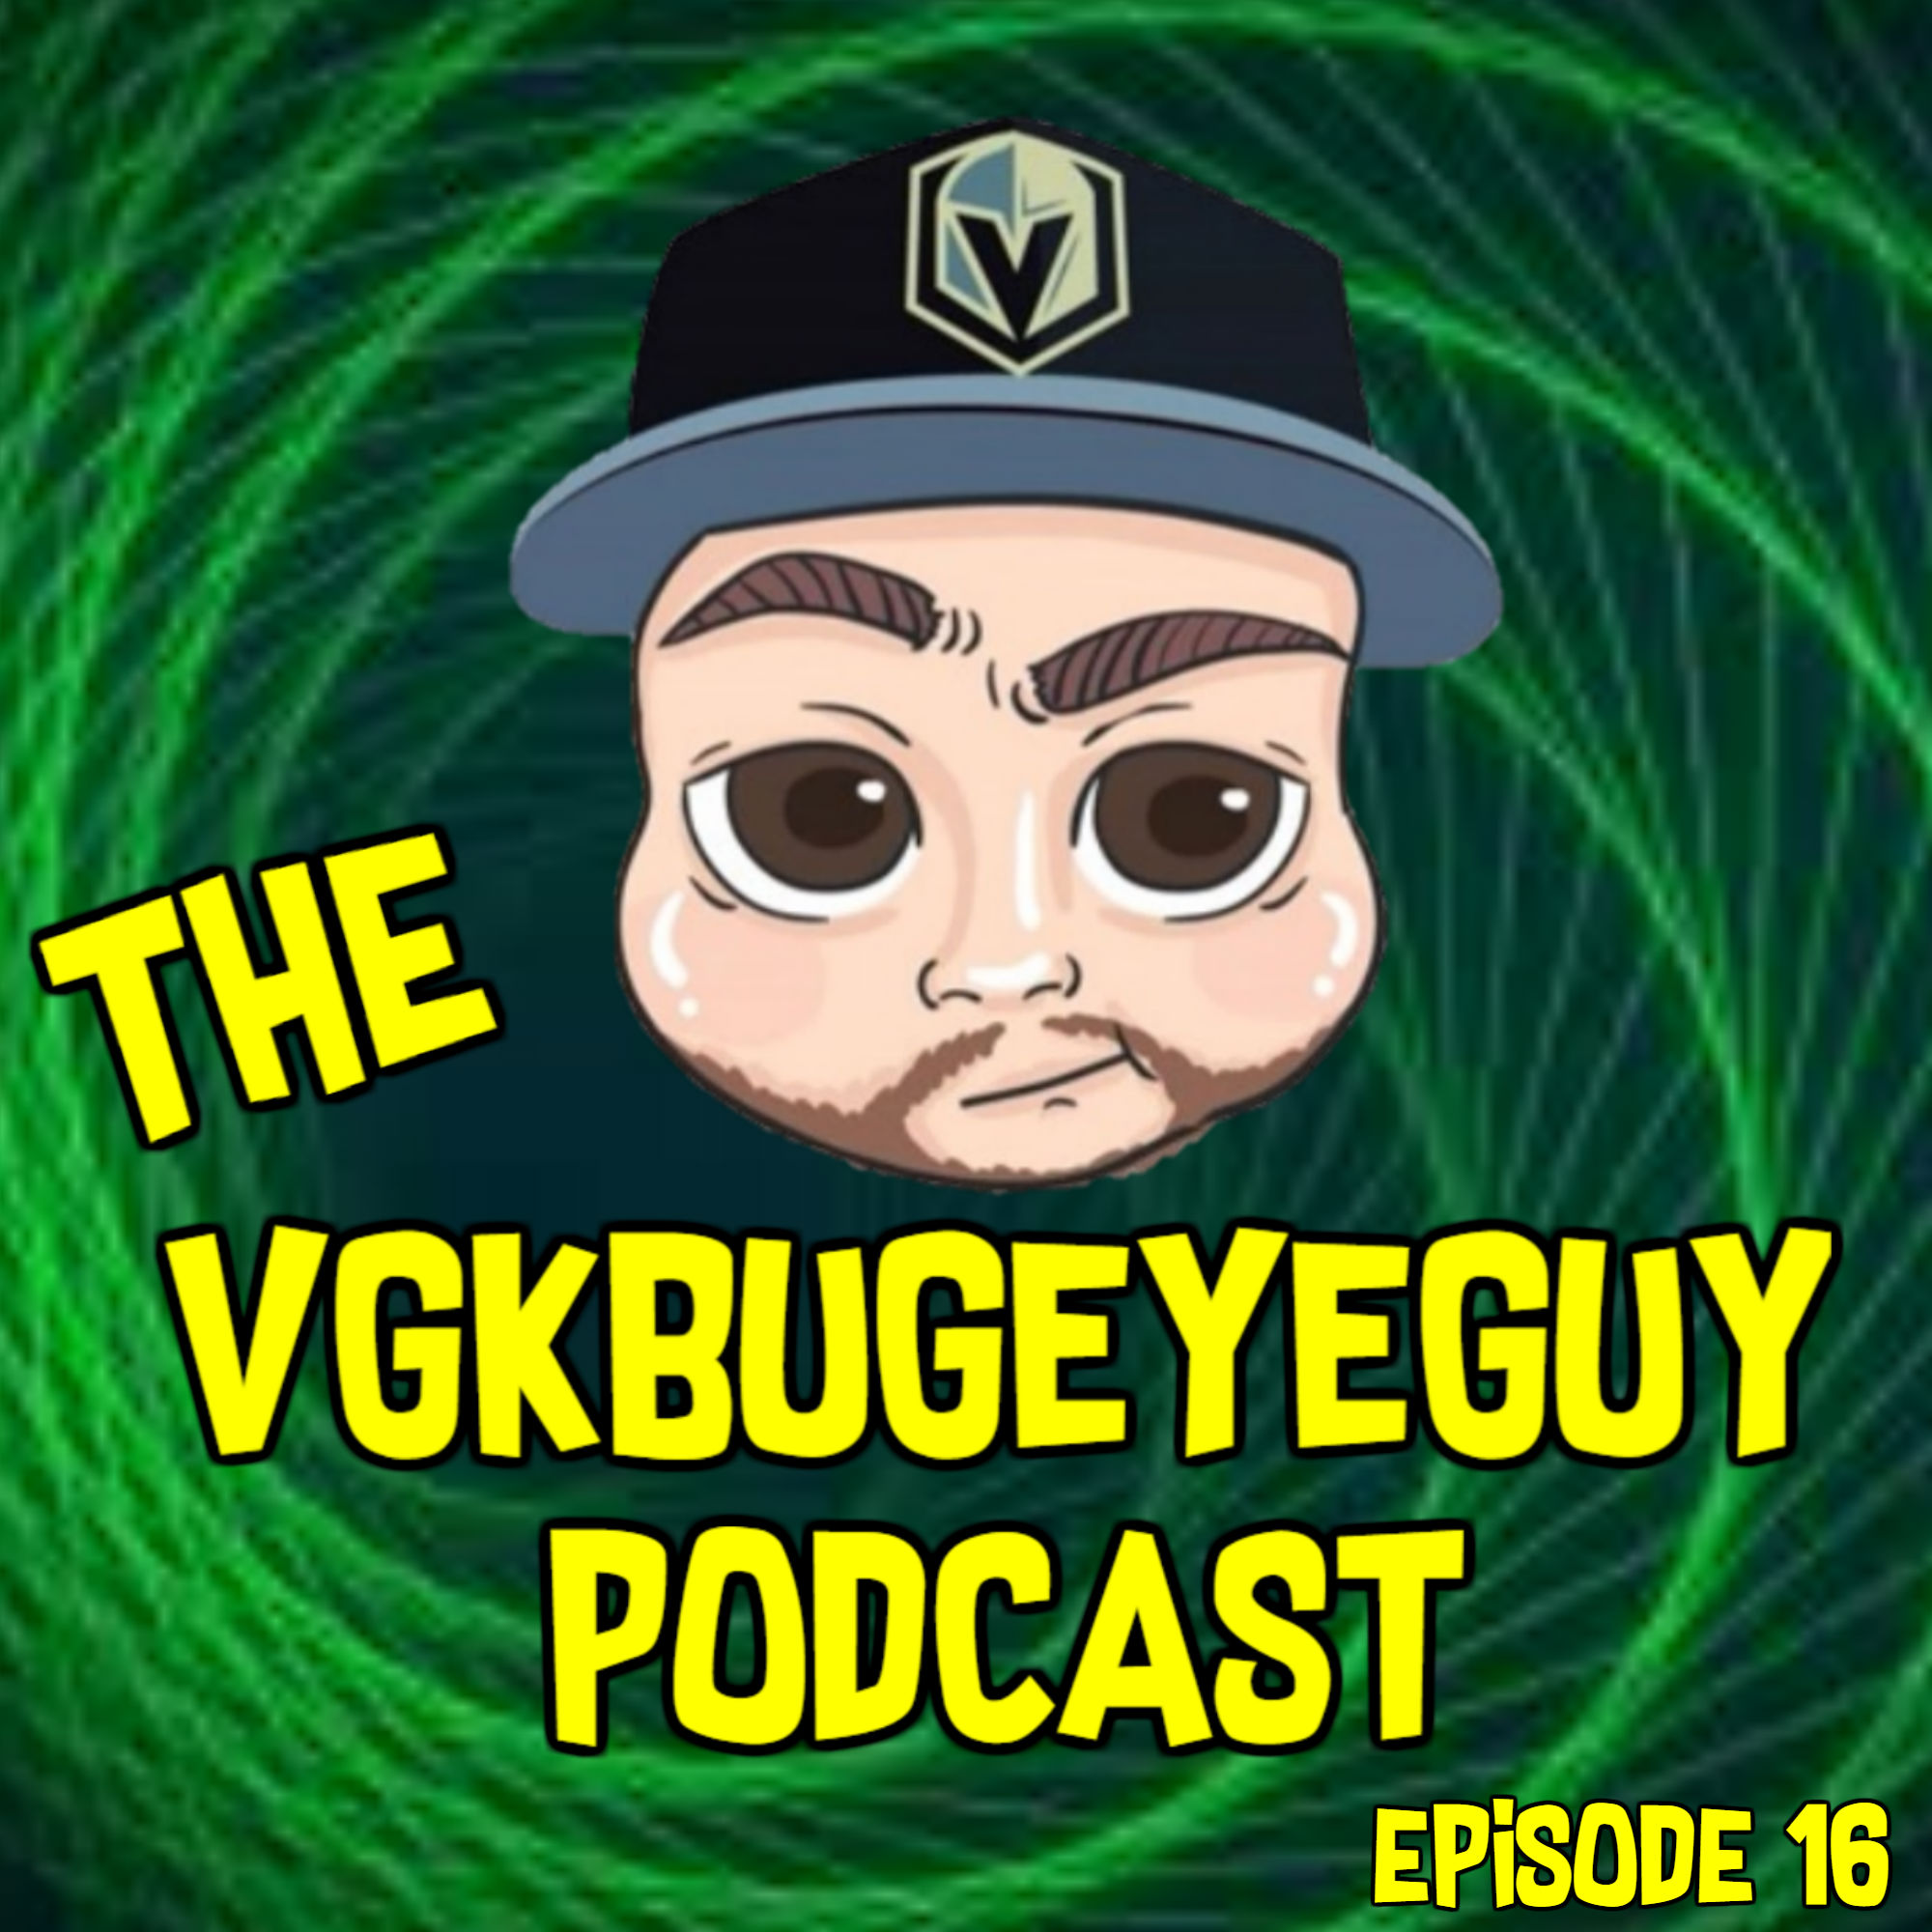 The VGKbugeyeGuy Podcast Episode 16